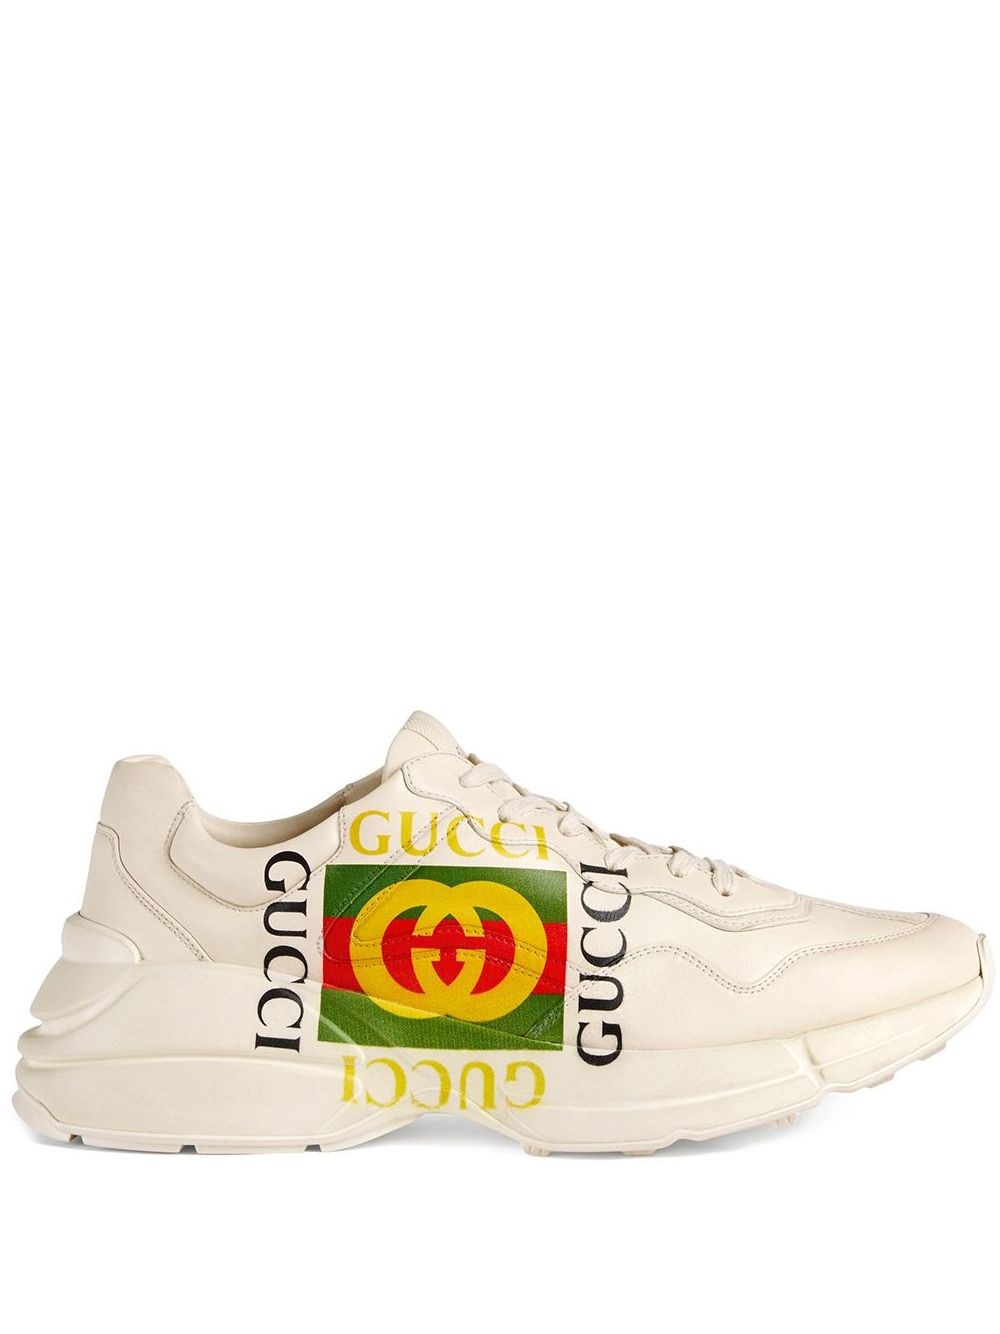 gucci SNEAKERS APOLLO LOGO available on